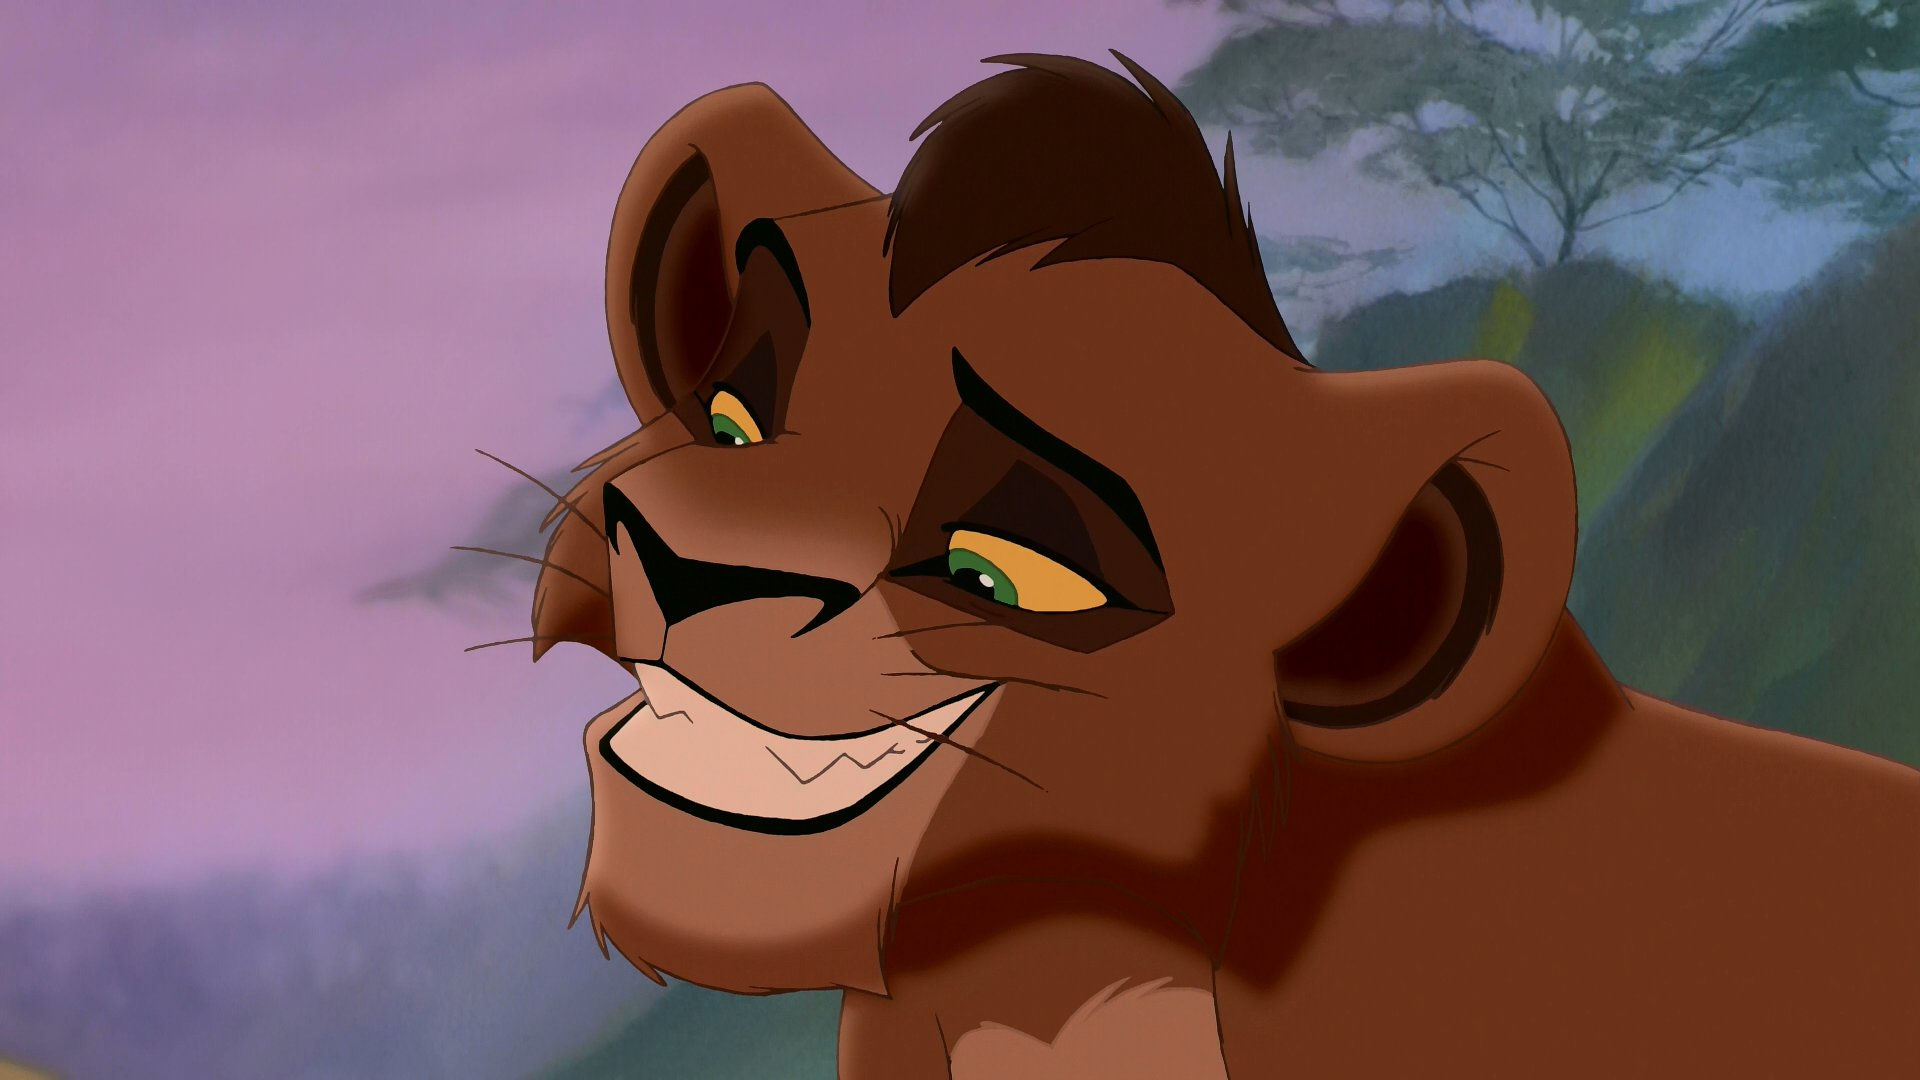 Kovu kid - The Lion King 2:Simba's Pride Wallpaper ...